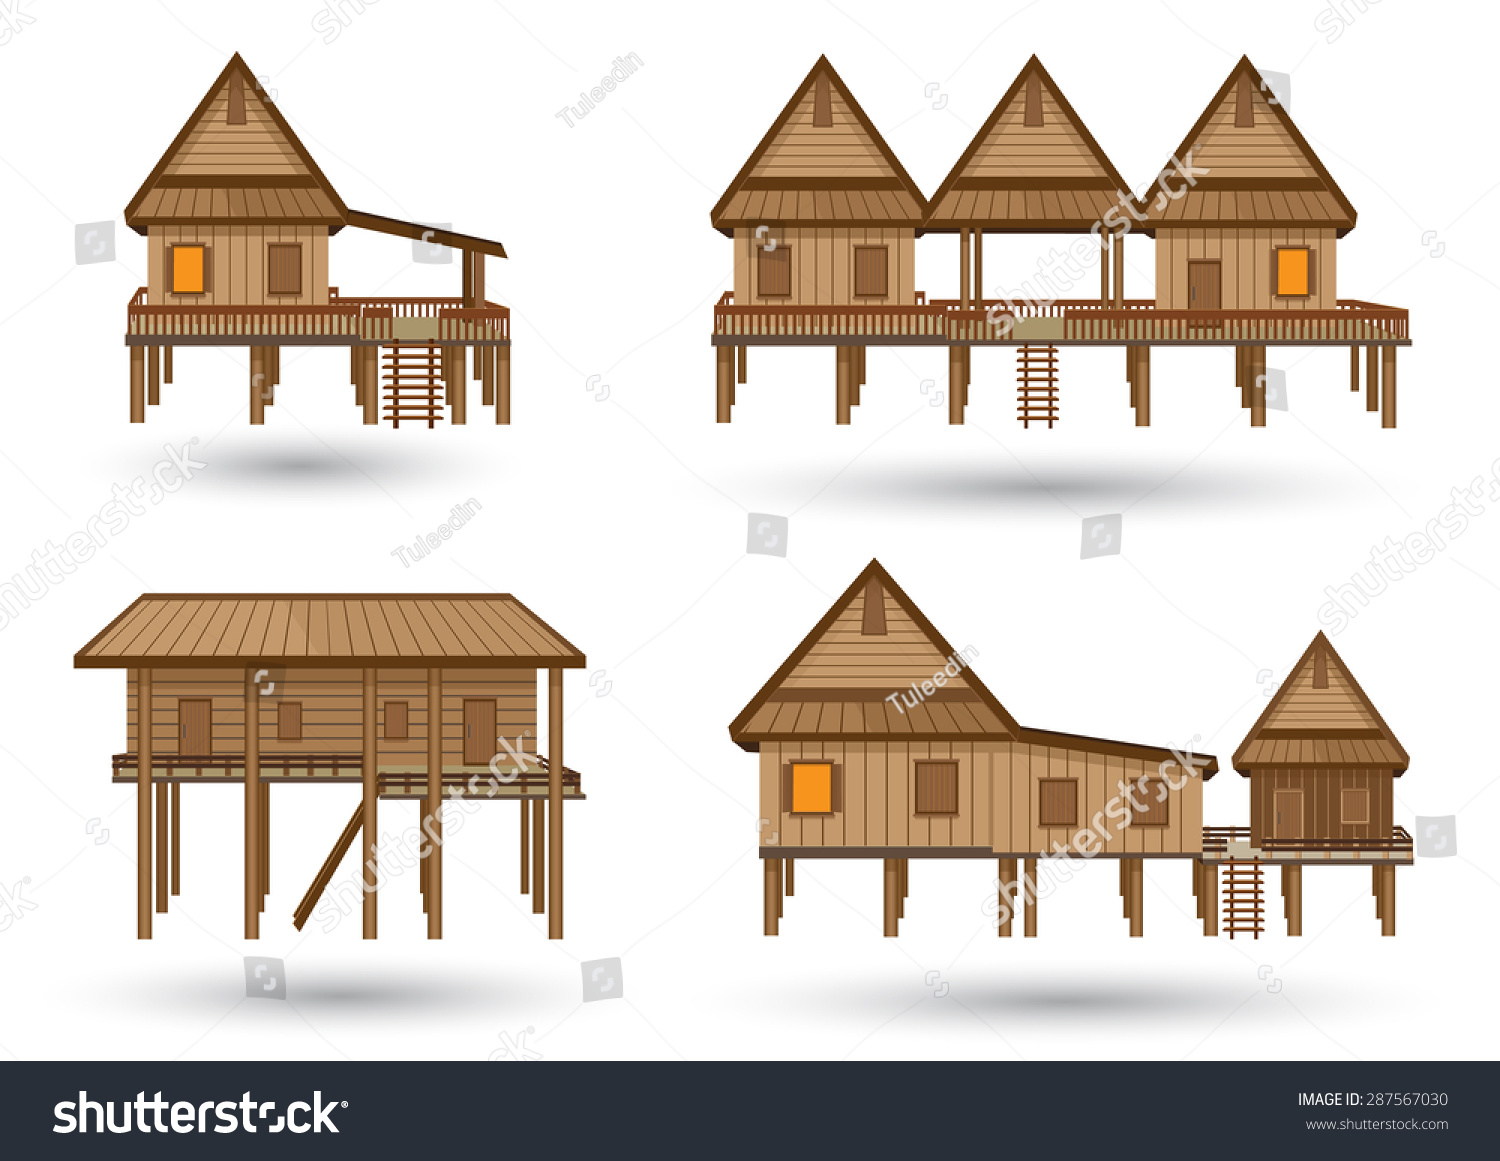 Wood House Elevation : House northeast thailand thai made stock vector